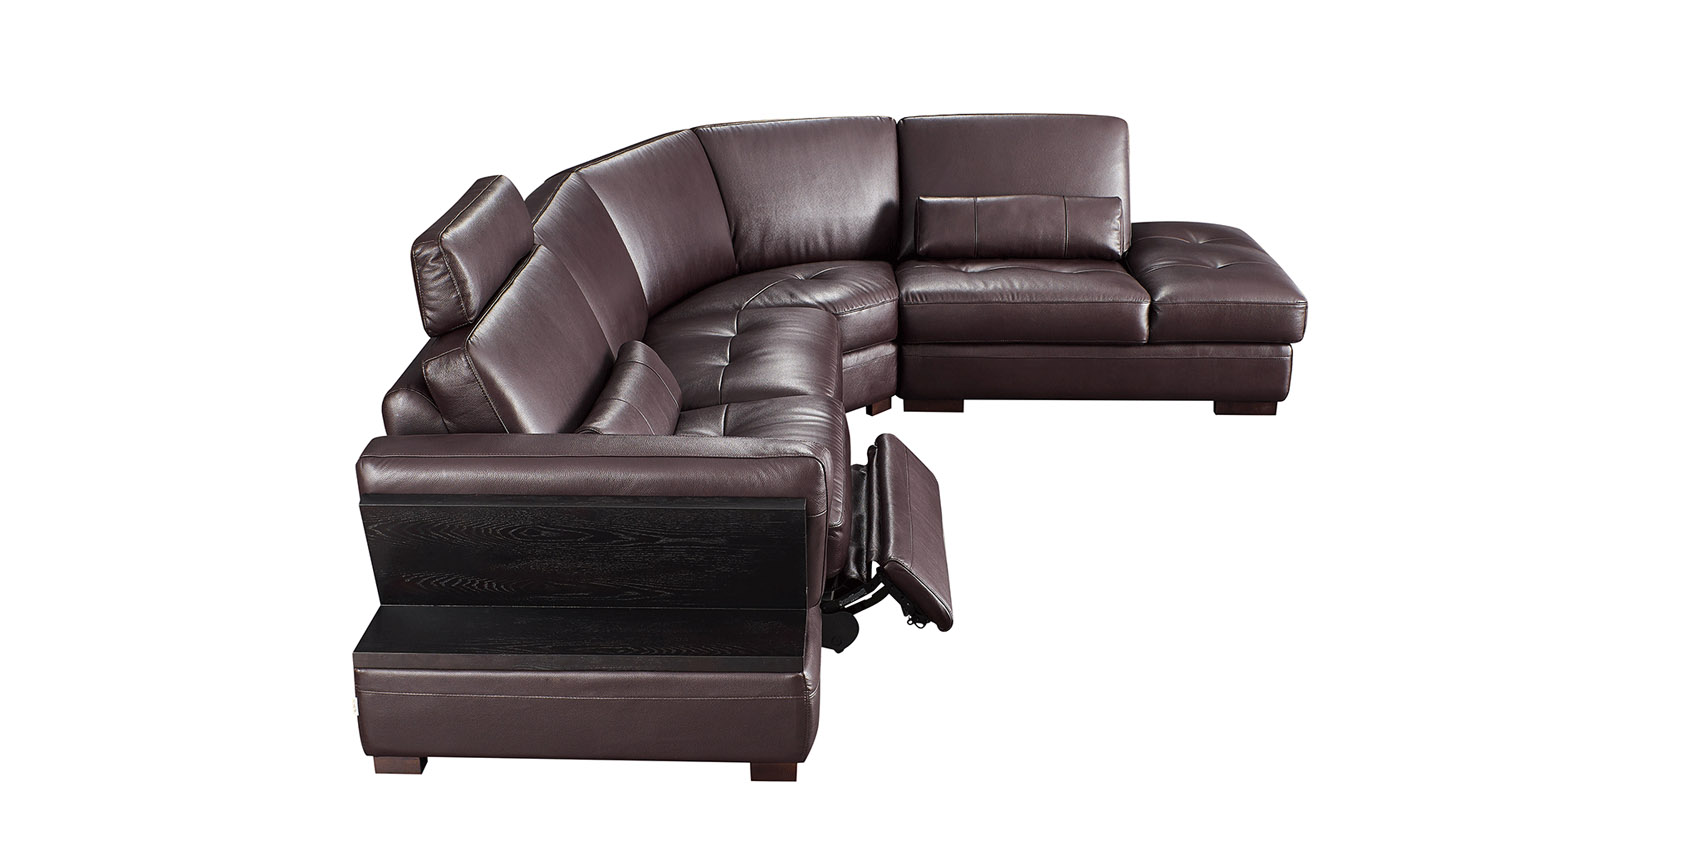 Exquisite Leather Upholstery Corner L Shape Sofa Winston